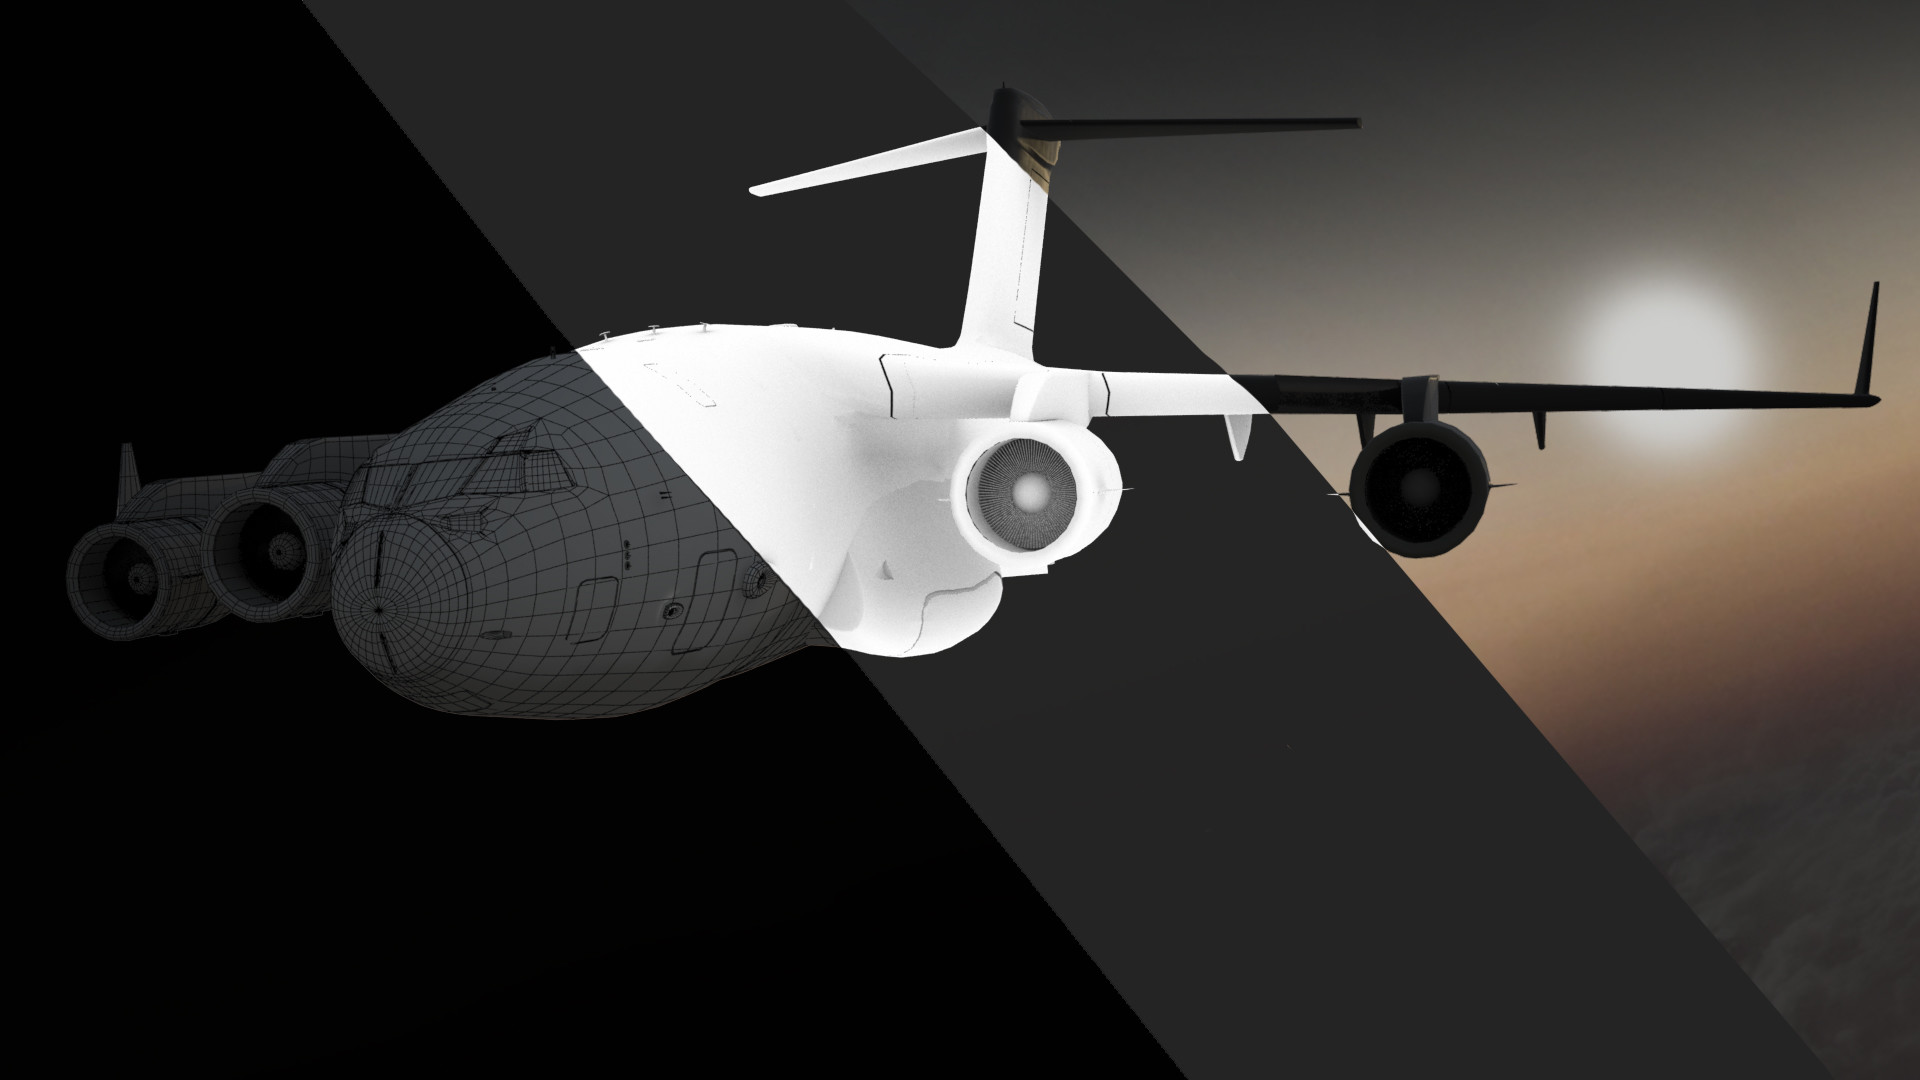 Kurtis knight boeing render2 detail